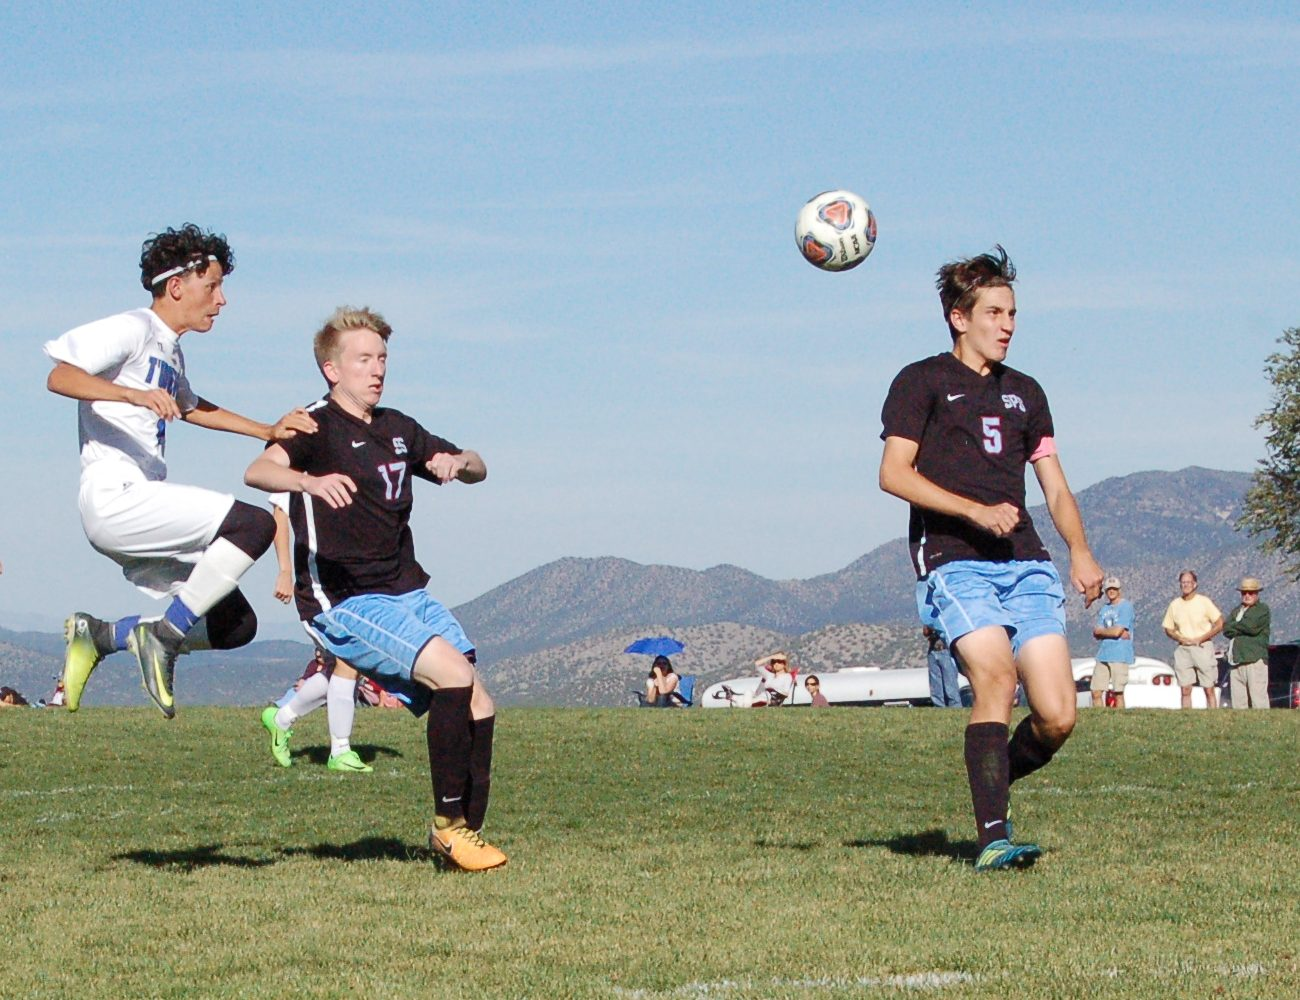 T'Wolves boys soccer season ends with disappointment and optimism